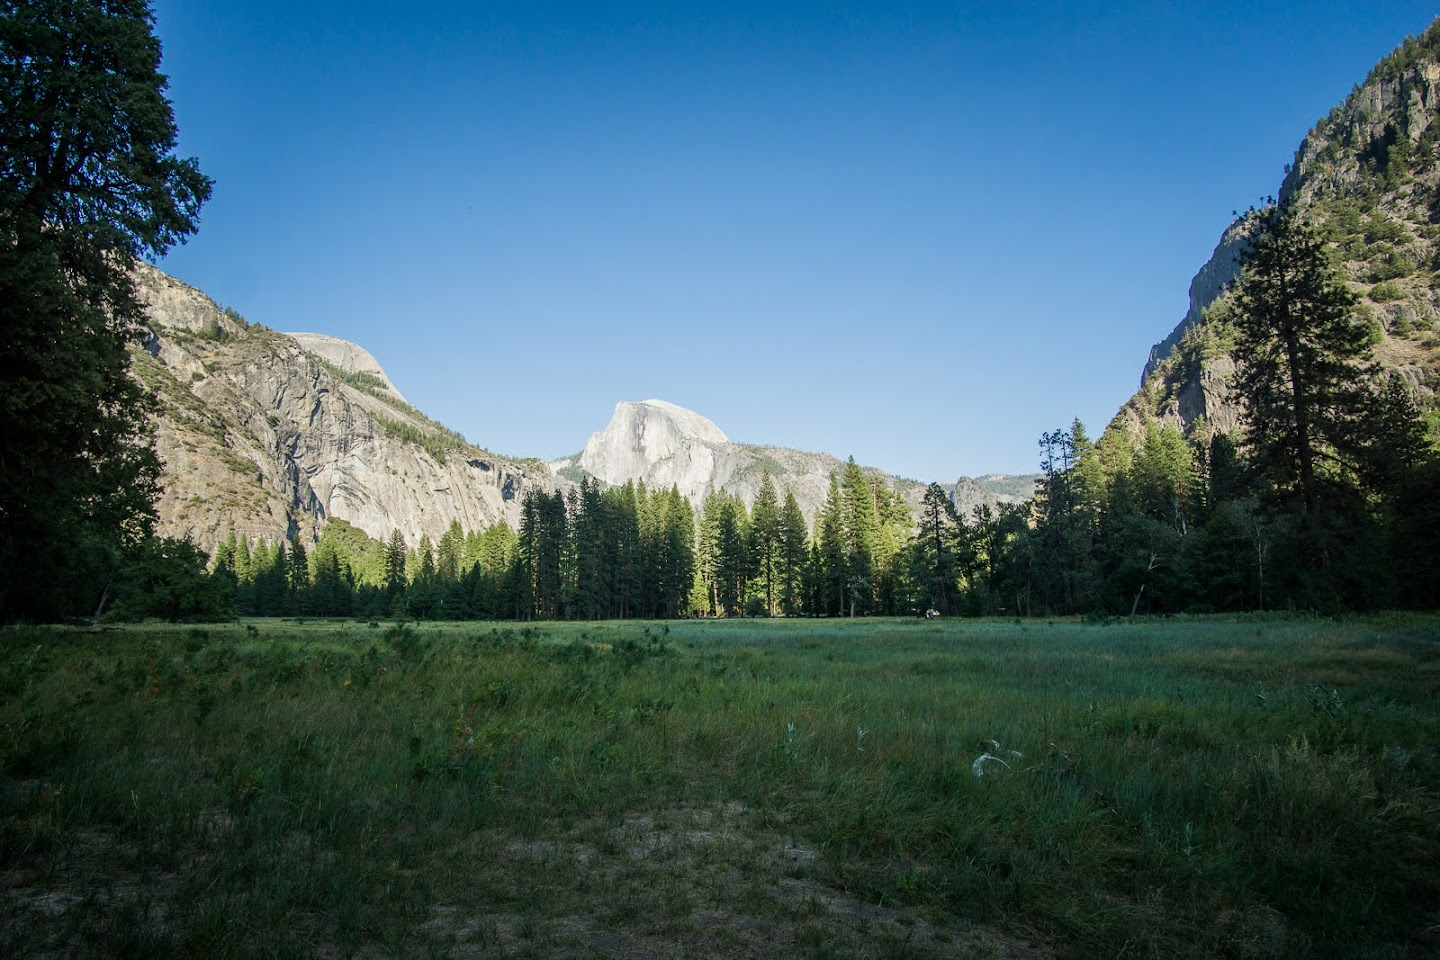 Cook's Meadow with view of Half Dome